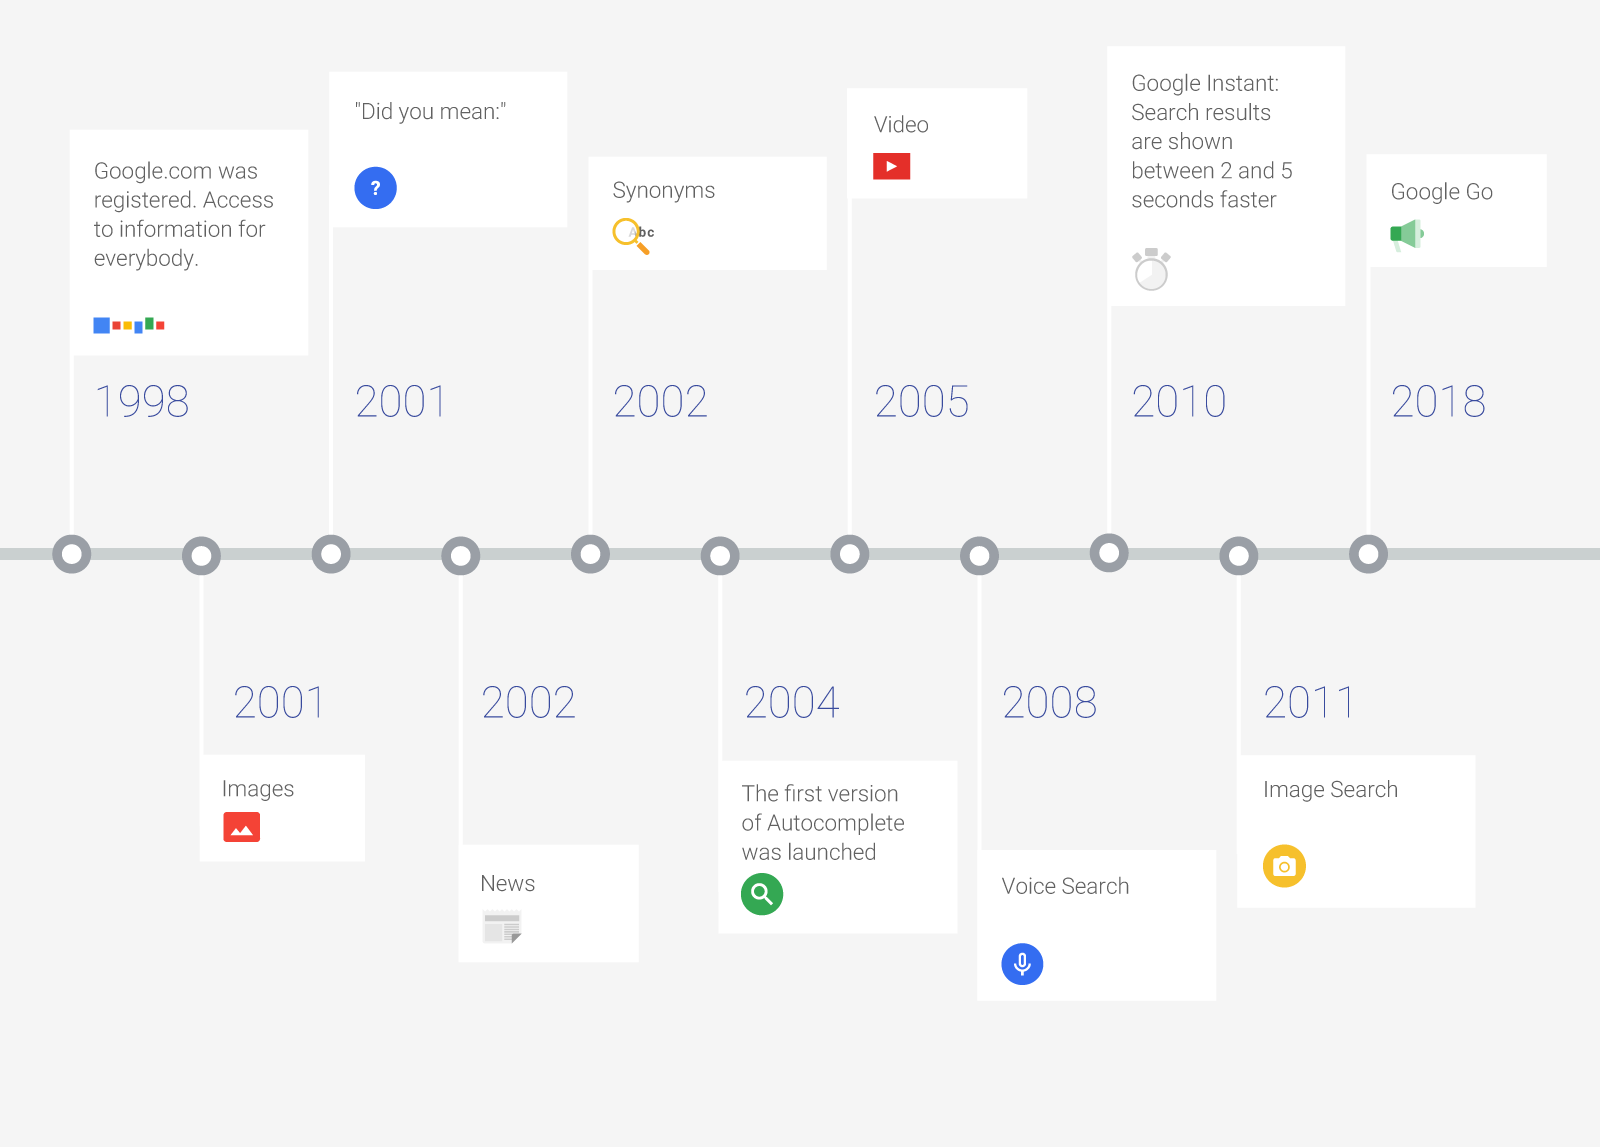 20 years of Google search evolution